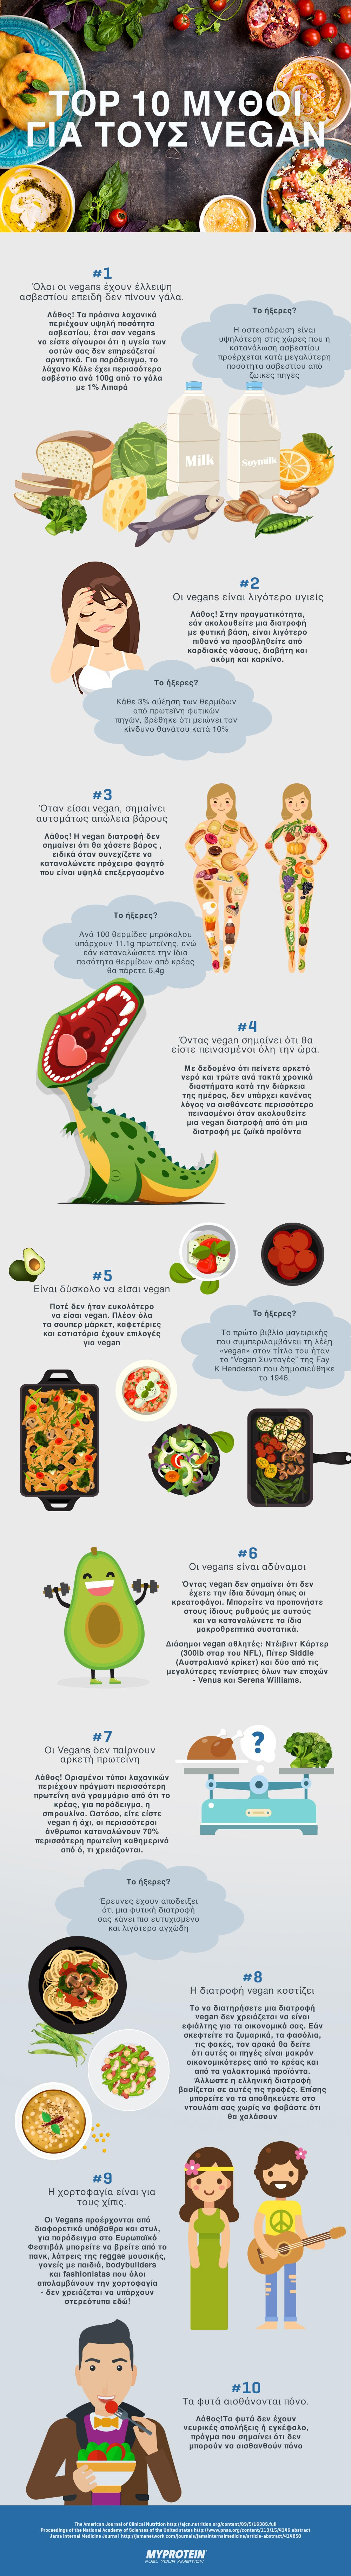 vegan-infographic-figs-internationals_GR